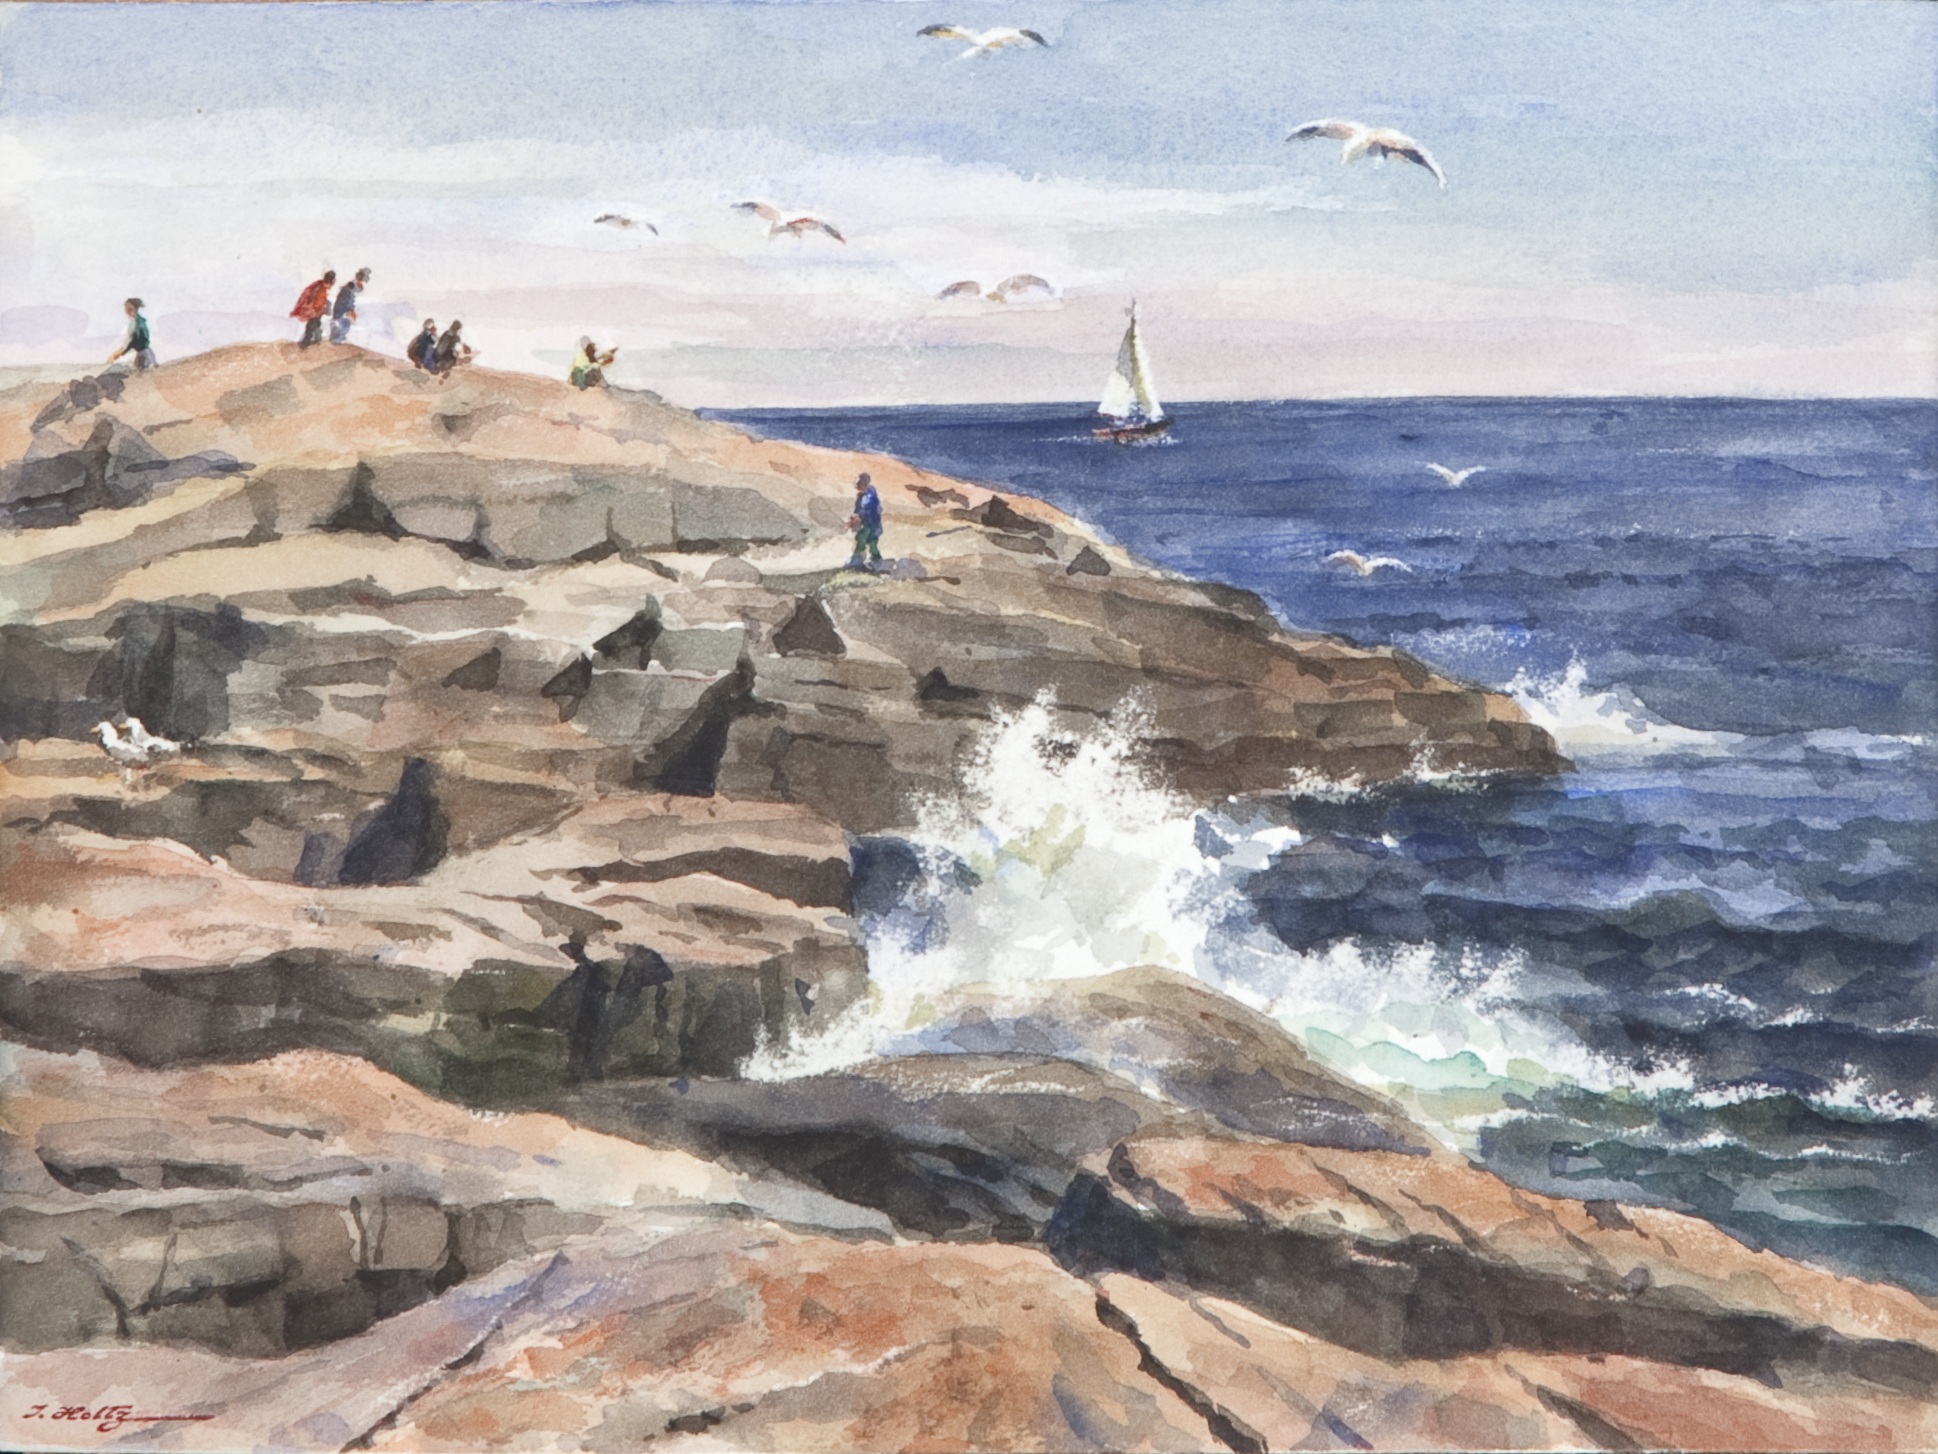 285 Rocky Shoreline with mat - Watercolor - 14 x 10 - No Frame